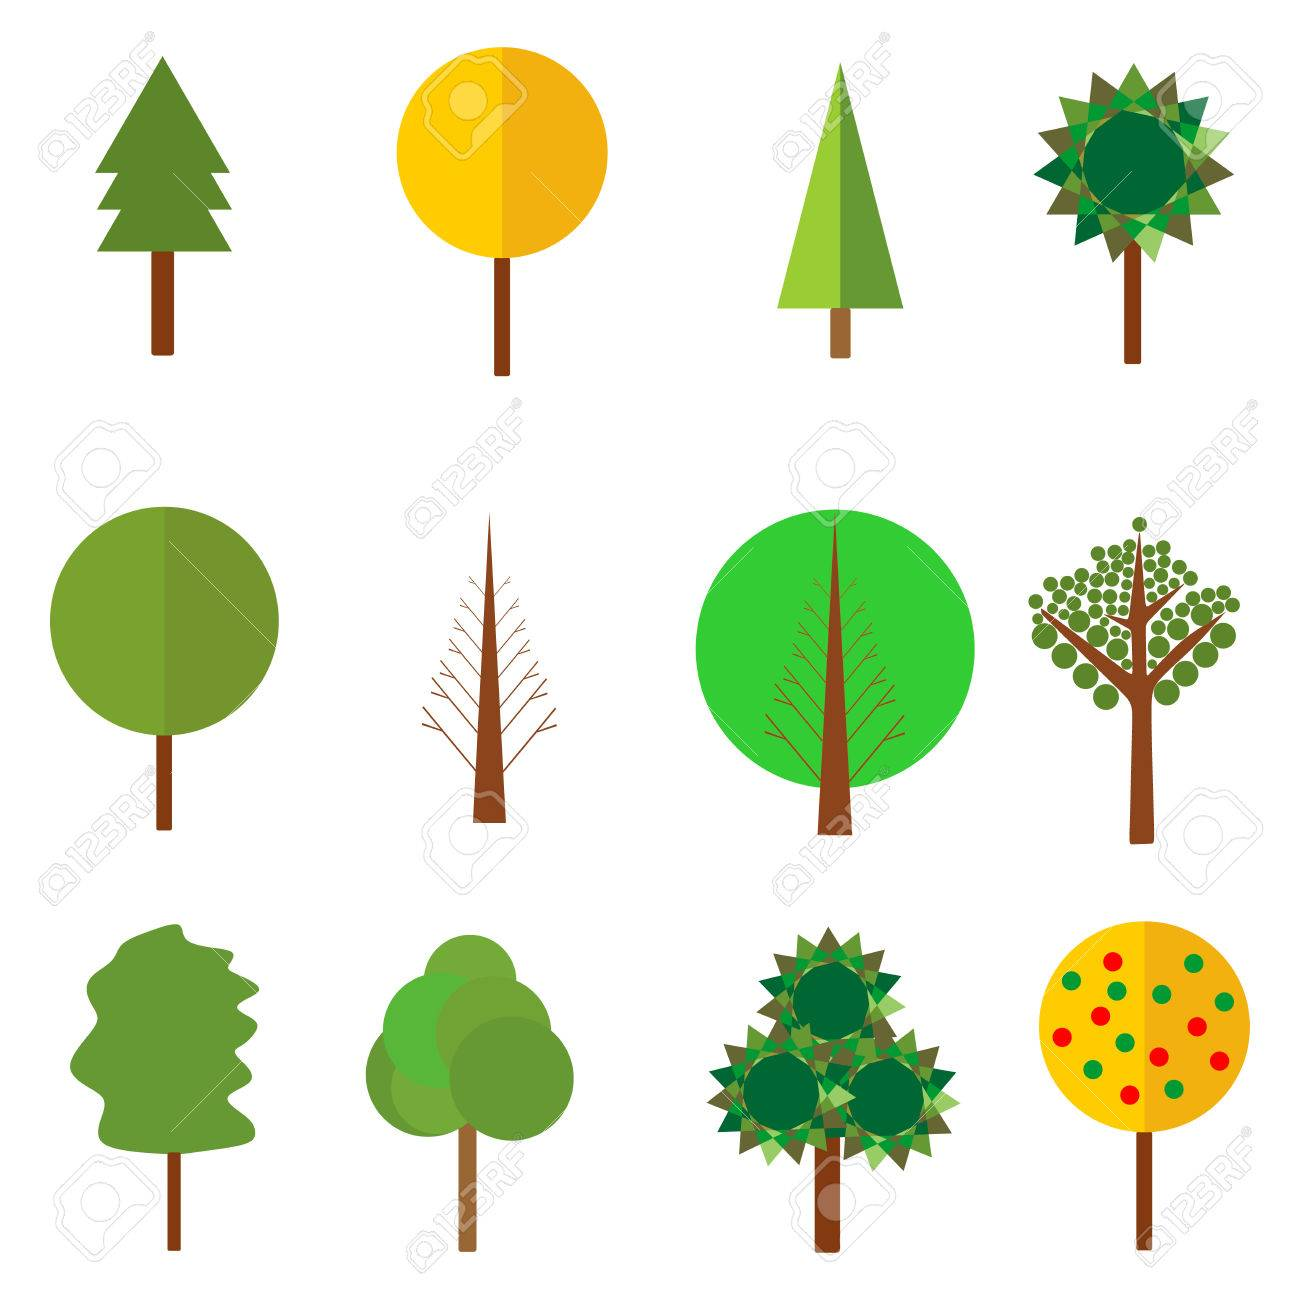 trees clipart vector tree